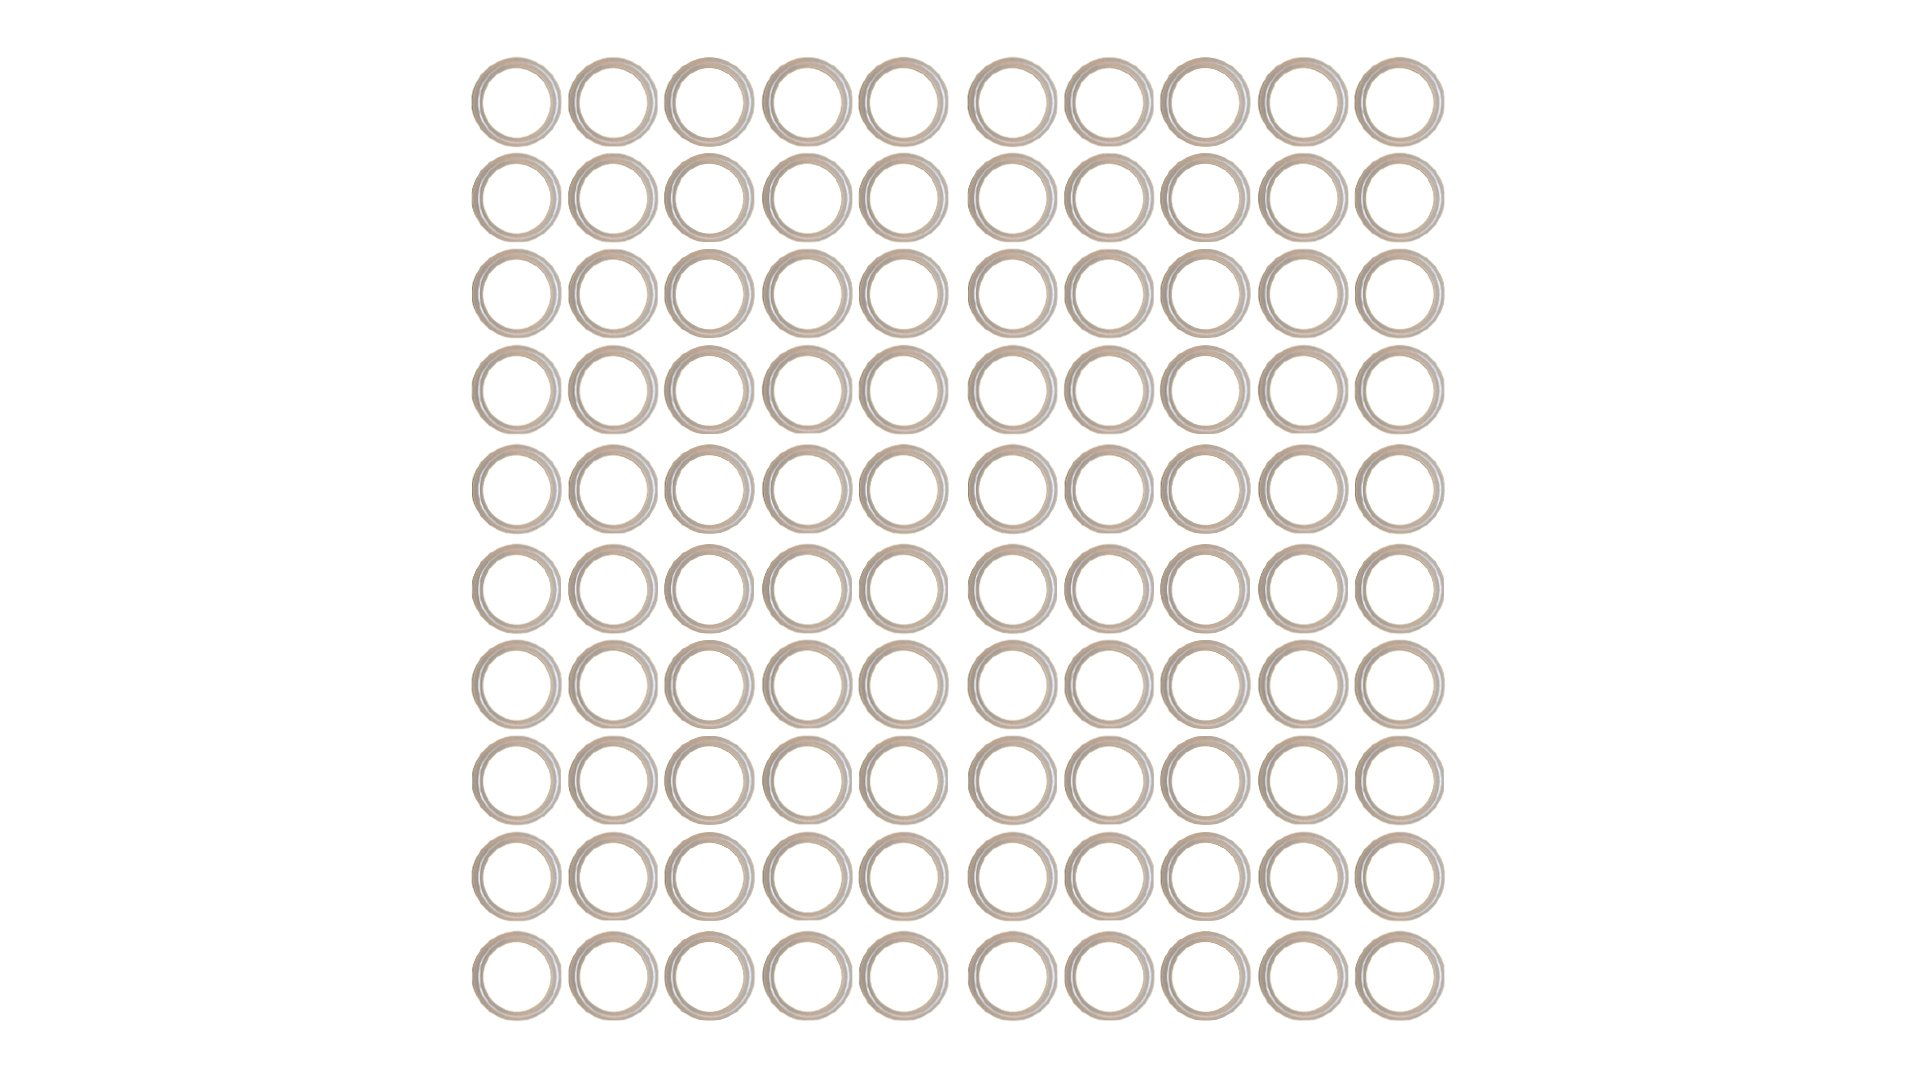 Sterling Seal OR90CLRURE019X100 019 90 D O-Ring, Urethane (Pack of 100)